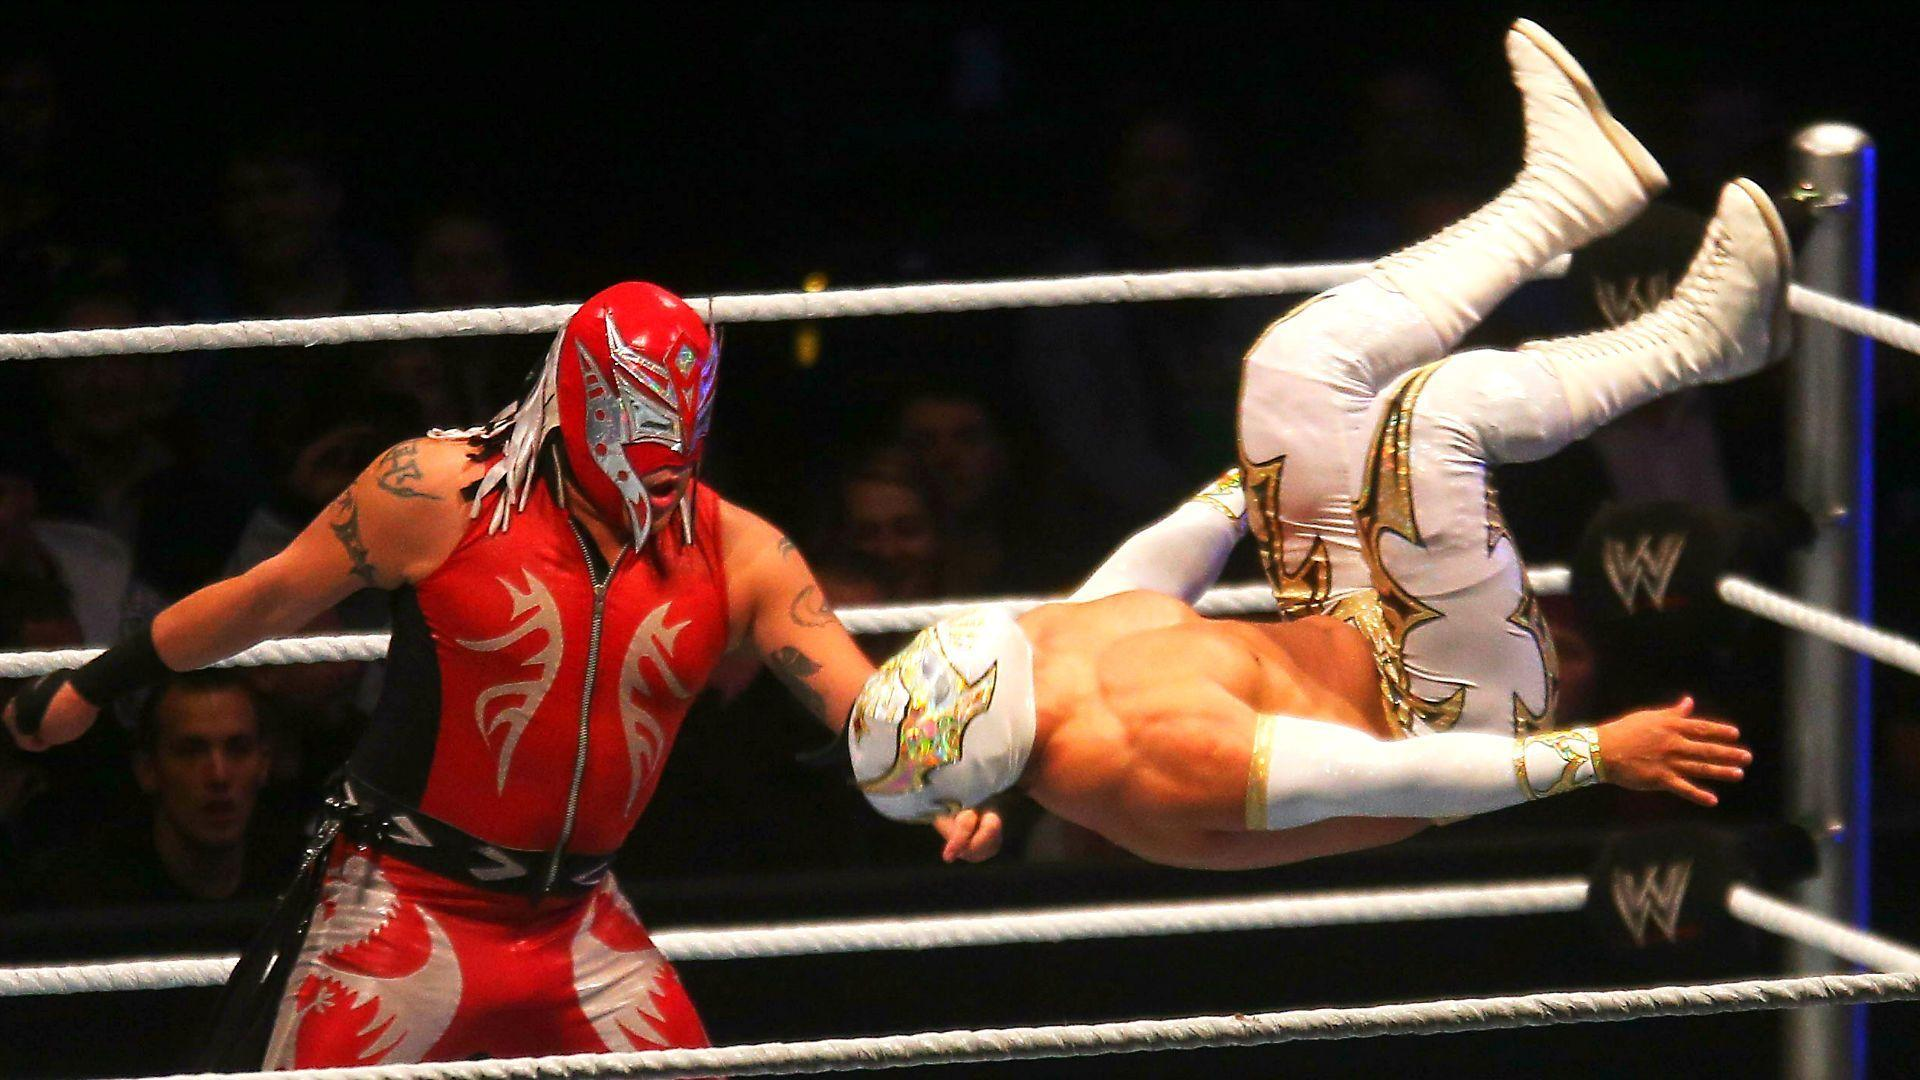 La Lucha Libre Wwe 2014 Rey Mysterio 2016 Full Hd Wallpapers Wallpaper Cave